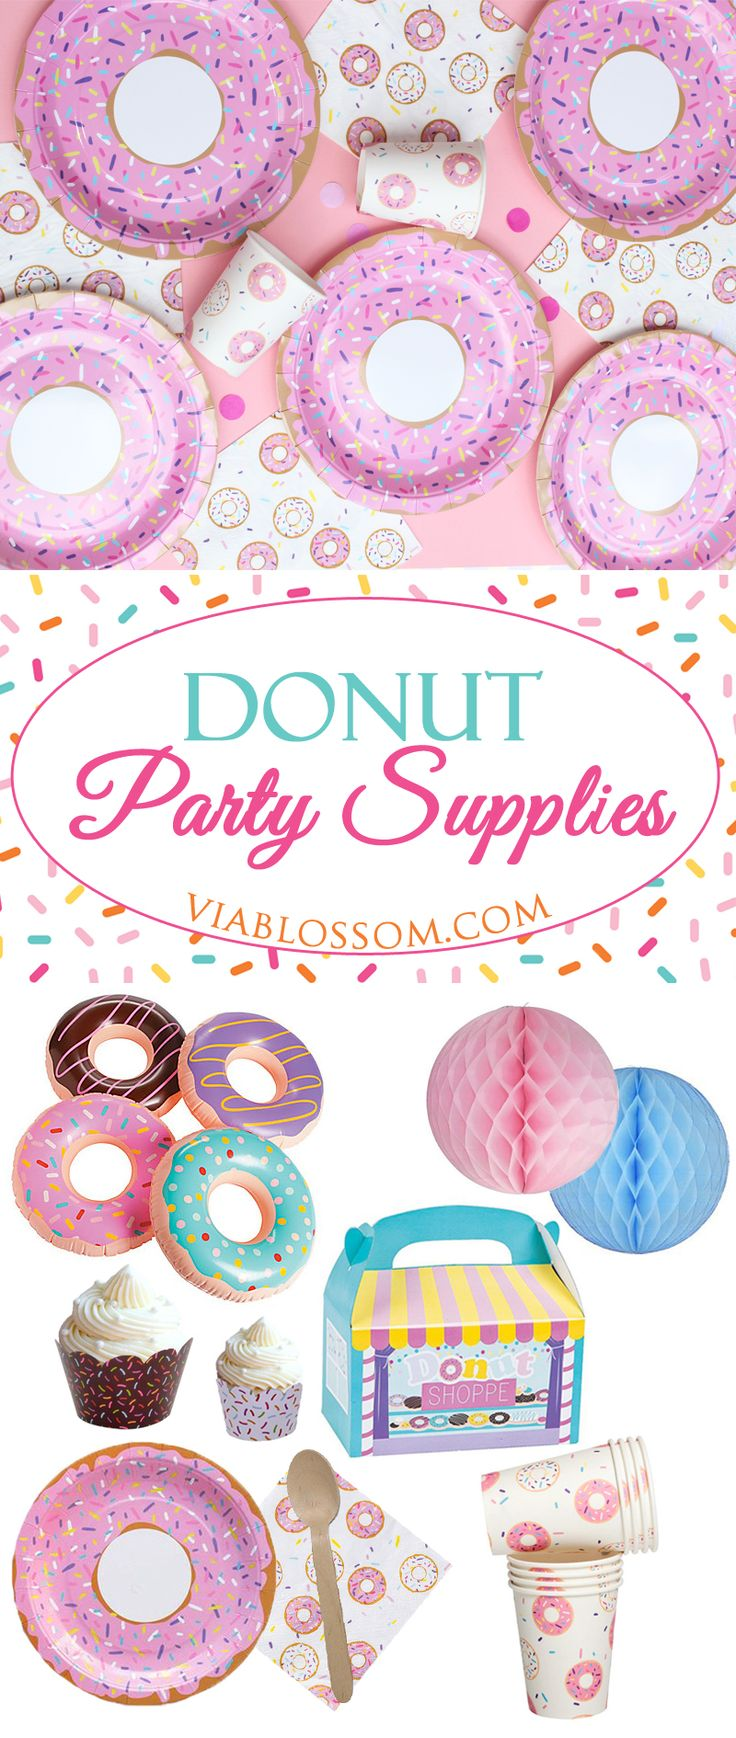 You will love our Donut Party Ideas and Decorations!!We have everything you'll need for a Doughnut Party!!